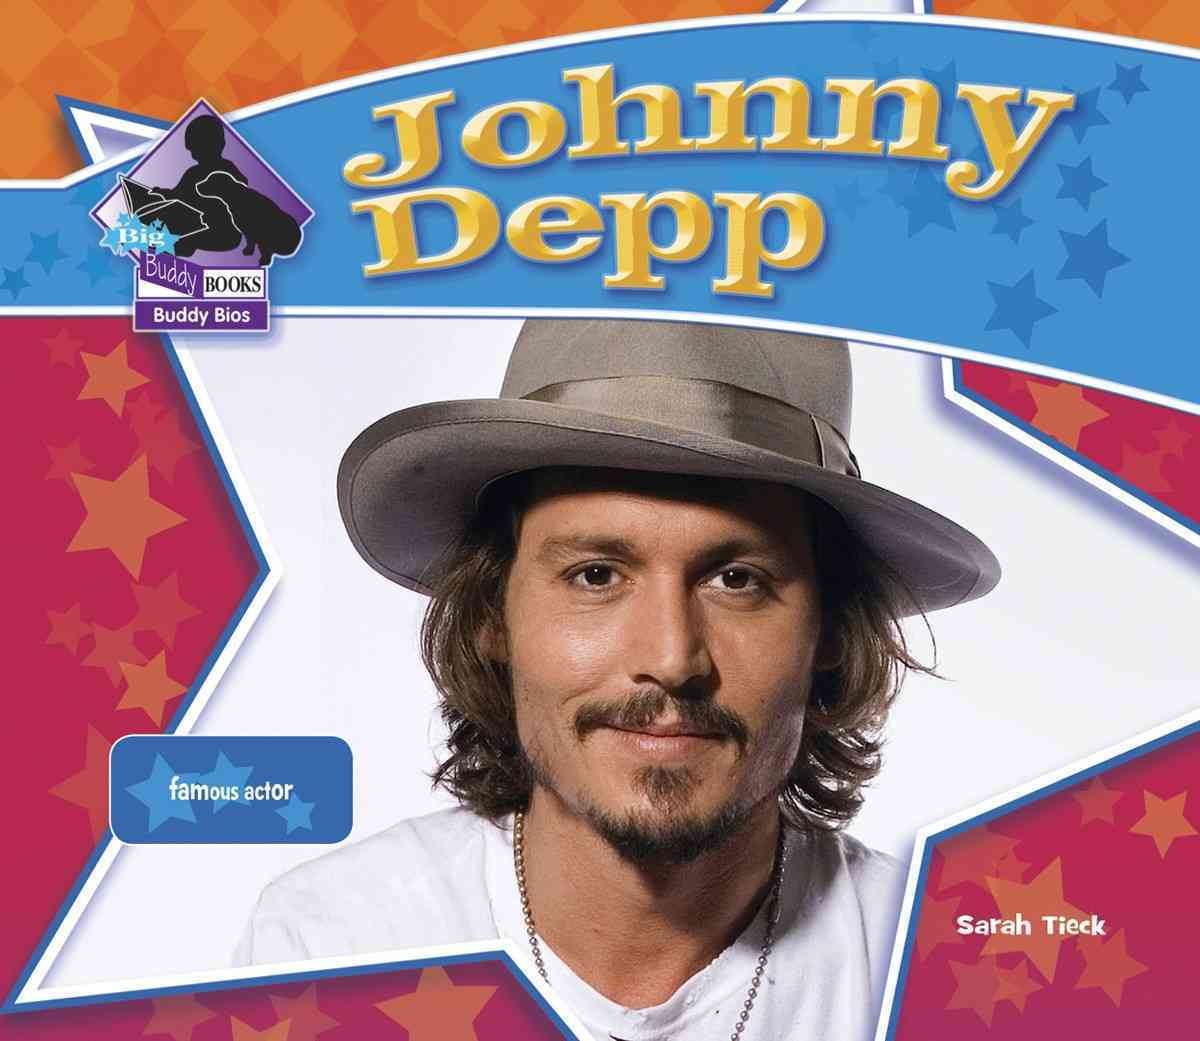 Johnny Depp: Famous Actor (Hardcover)